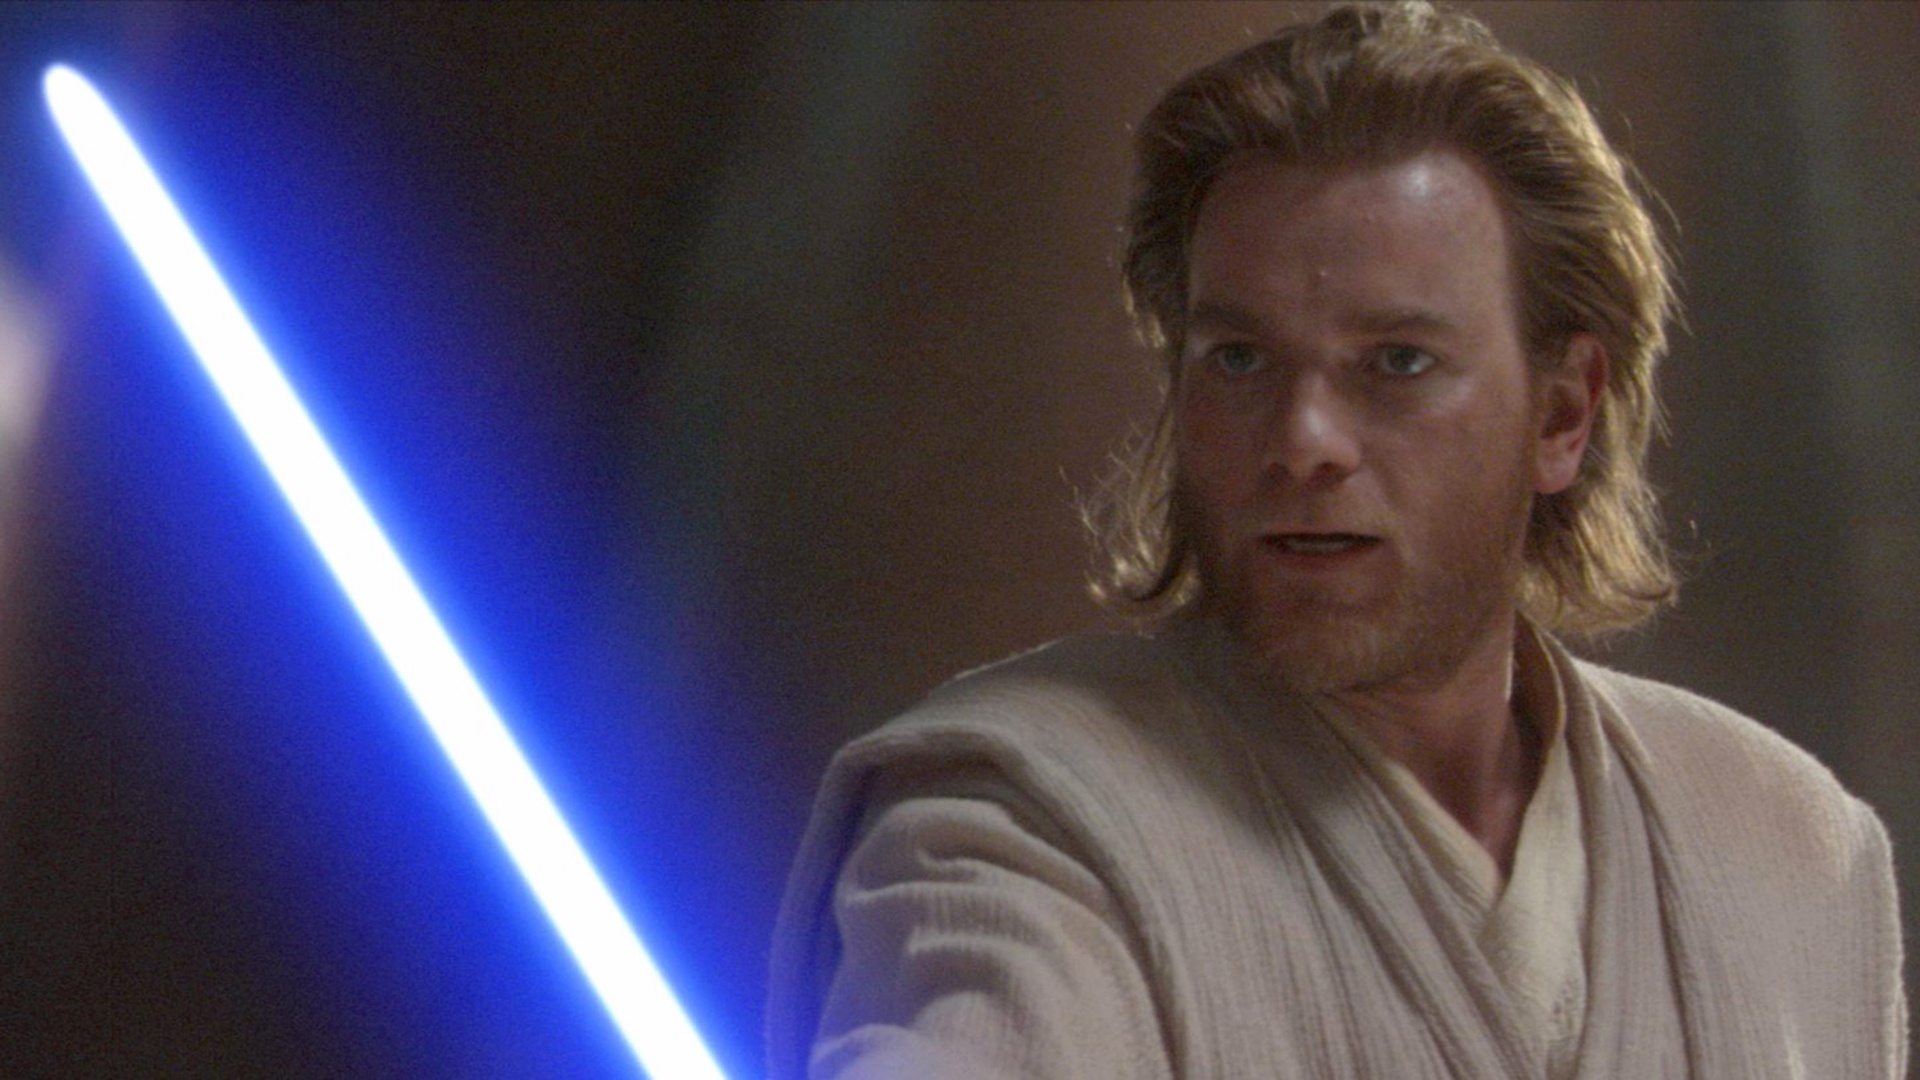 get-hype-for-the-obi-wan-movie-by-listening-to-ewan-macgregor-talk-about-his-character-social.jpg